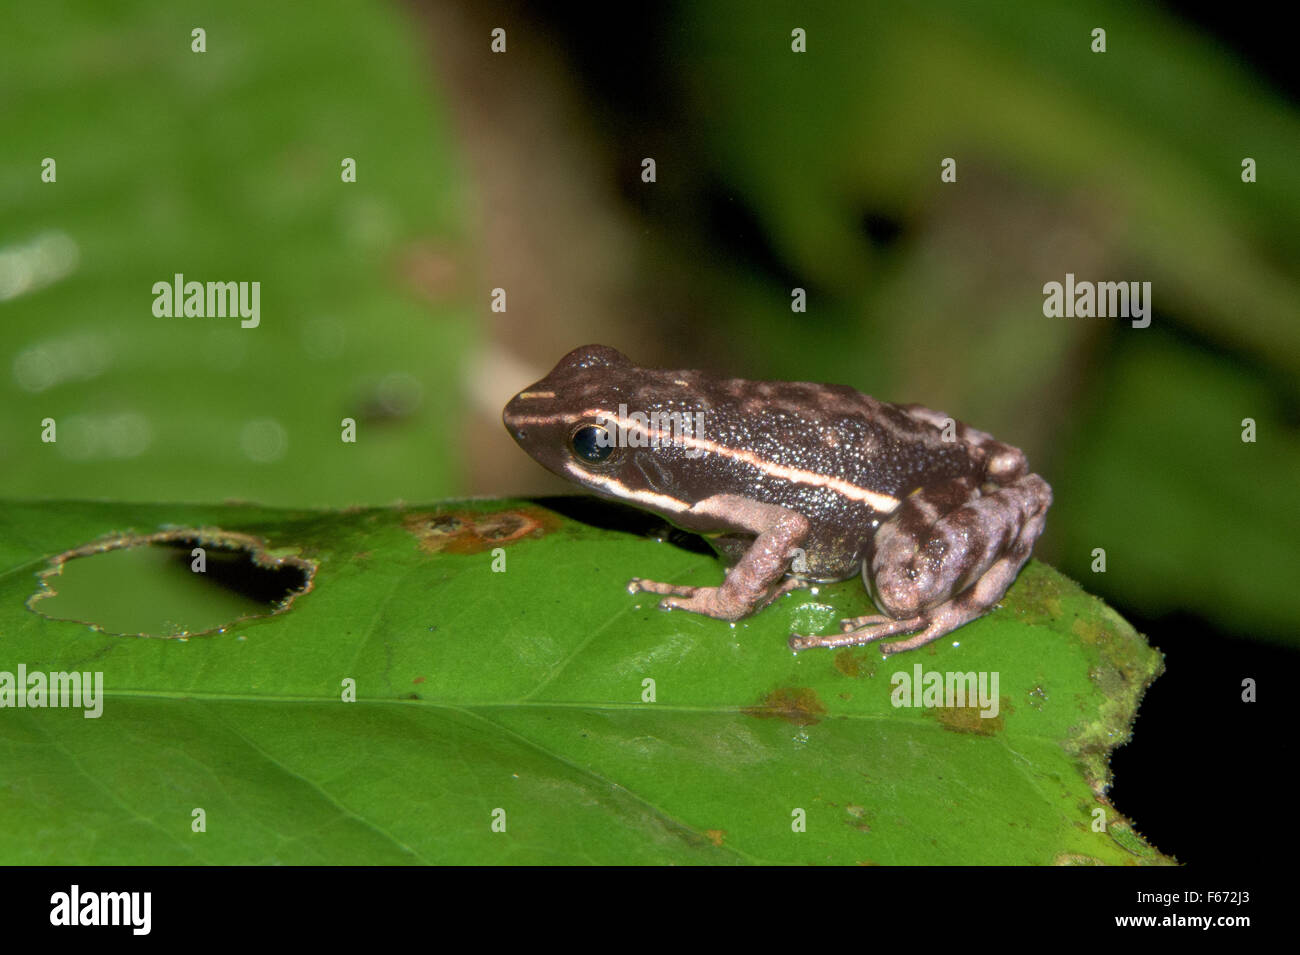 Poison dart frog (Hyloxalus sp.) in the rainforest in the Madre de Dios region of Peru - Stock Image